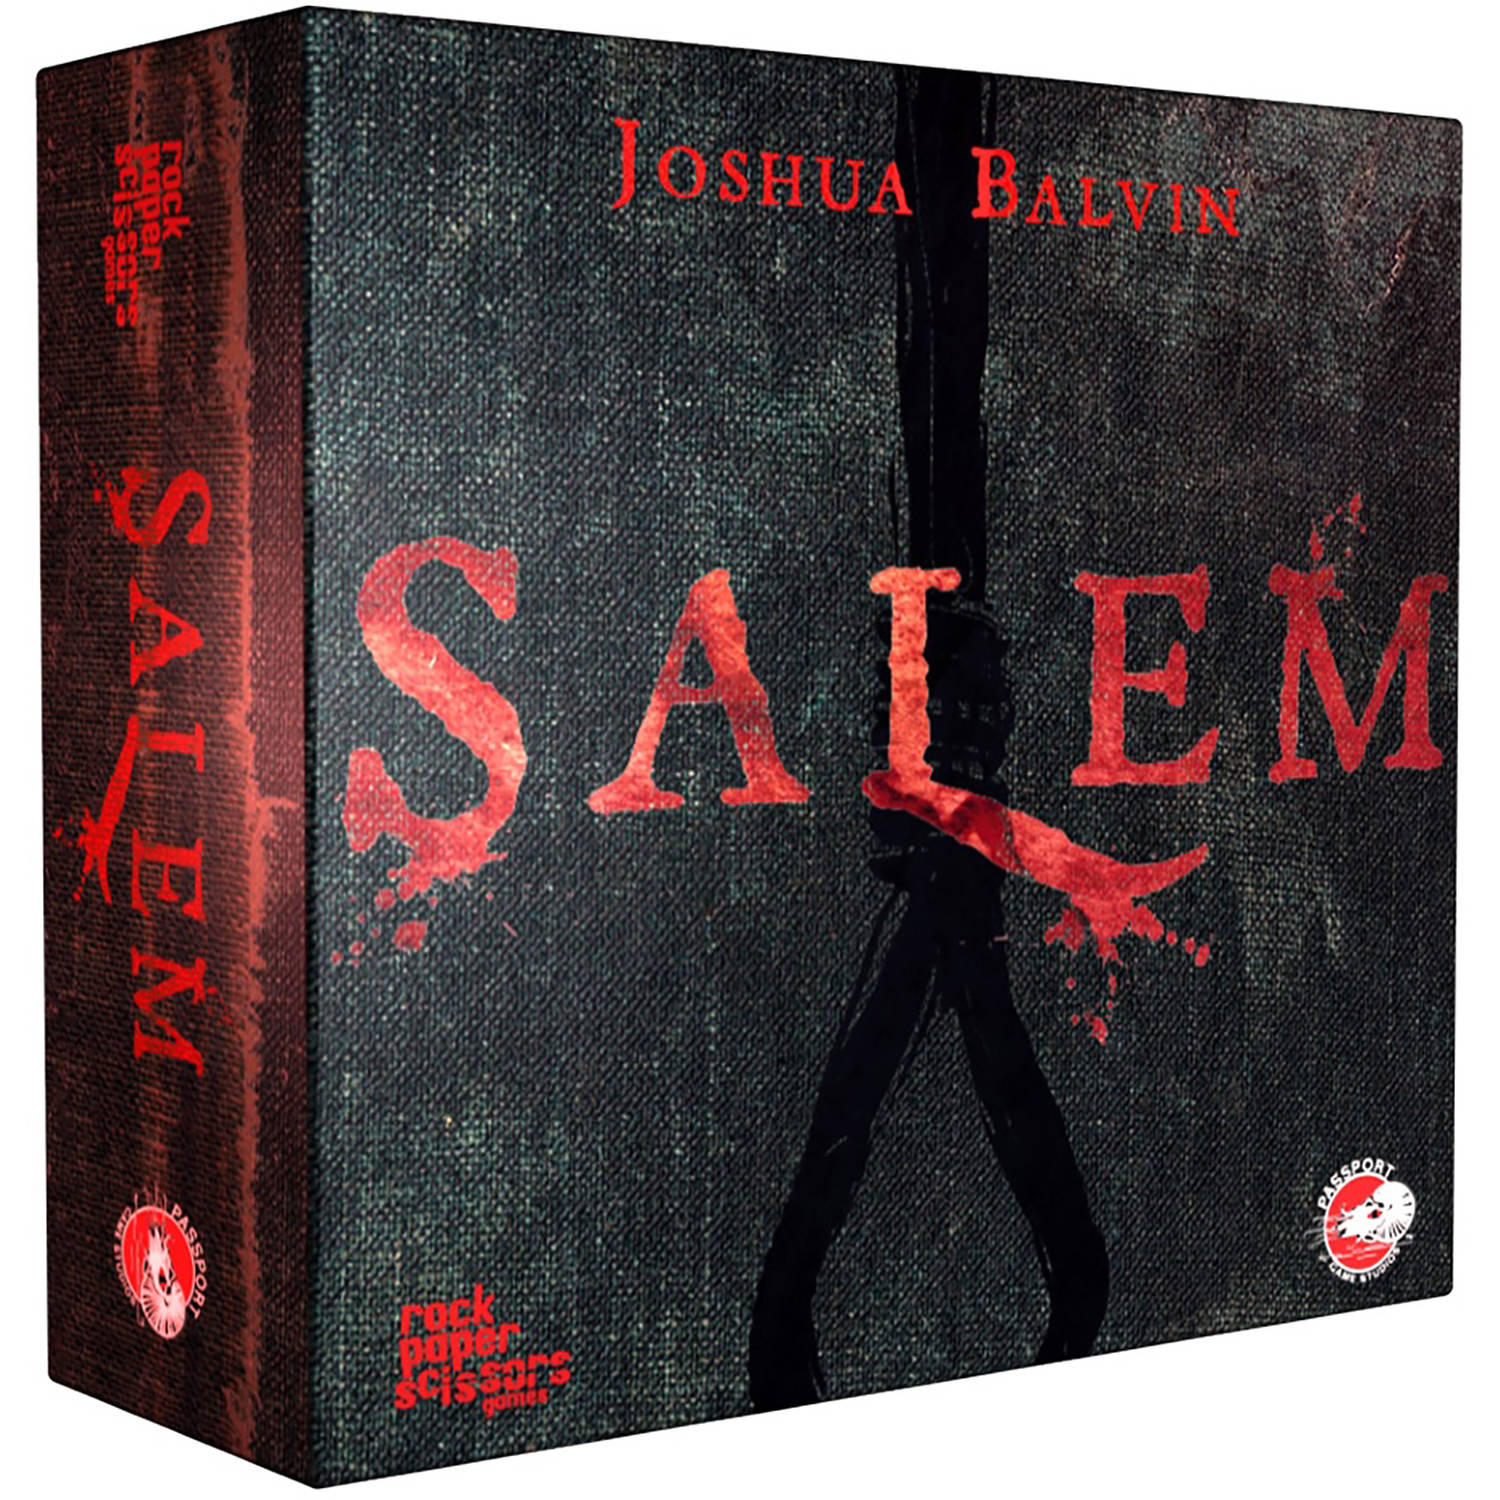 Salem Board Game by Passport Game Studios